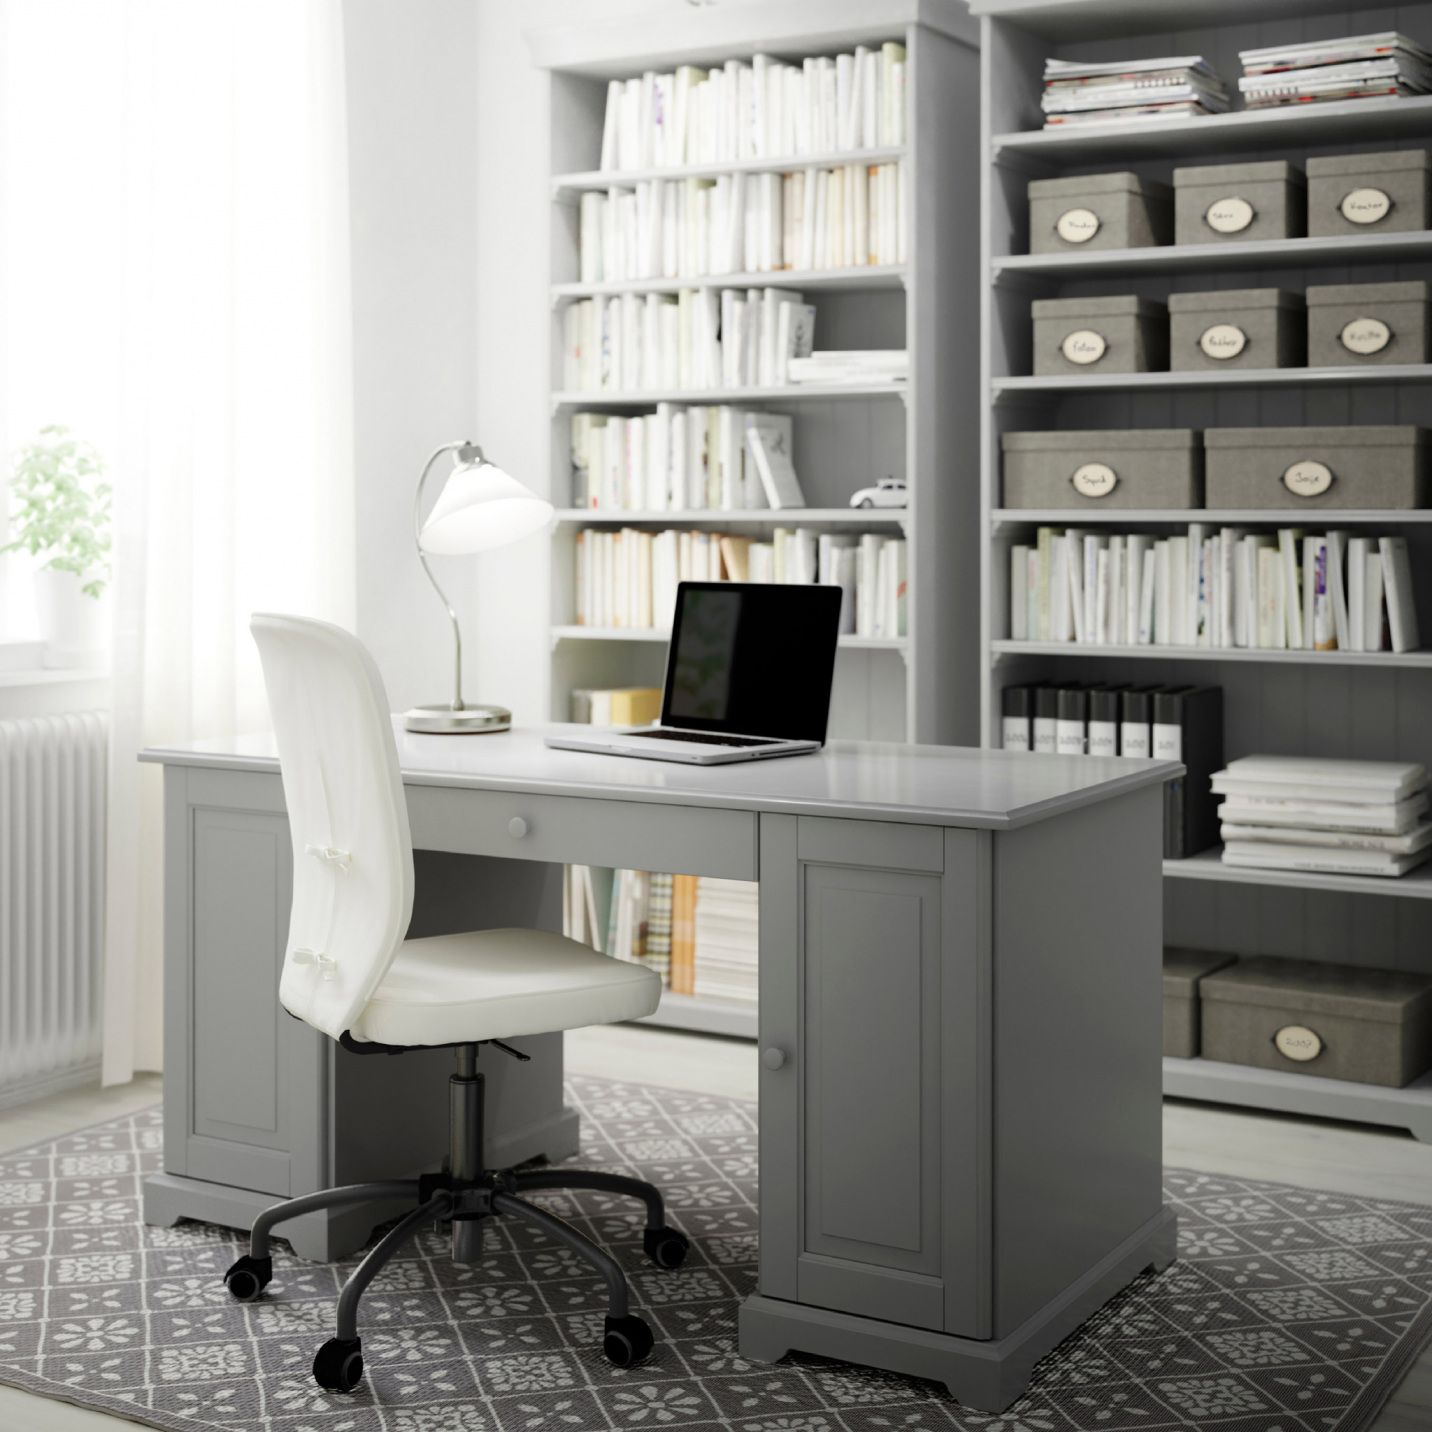 ikea home office furniture uk. Ikea Office Desks Uk - Real Wood Home Furniture Check More At Http:/ Ikea Home Office Furniture Uk C